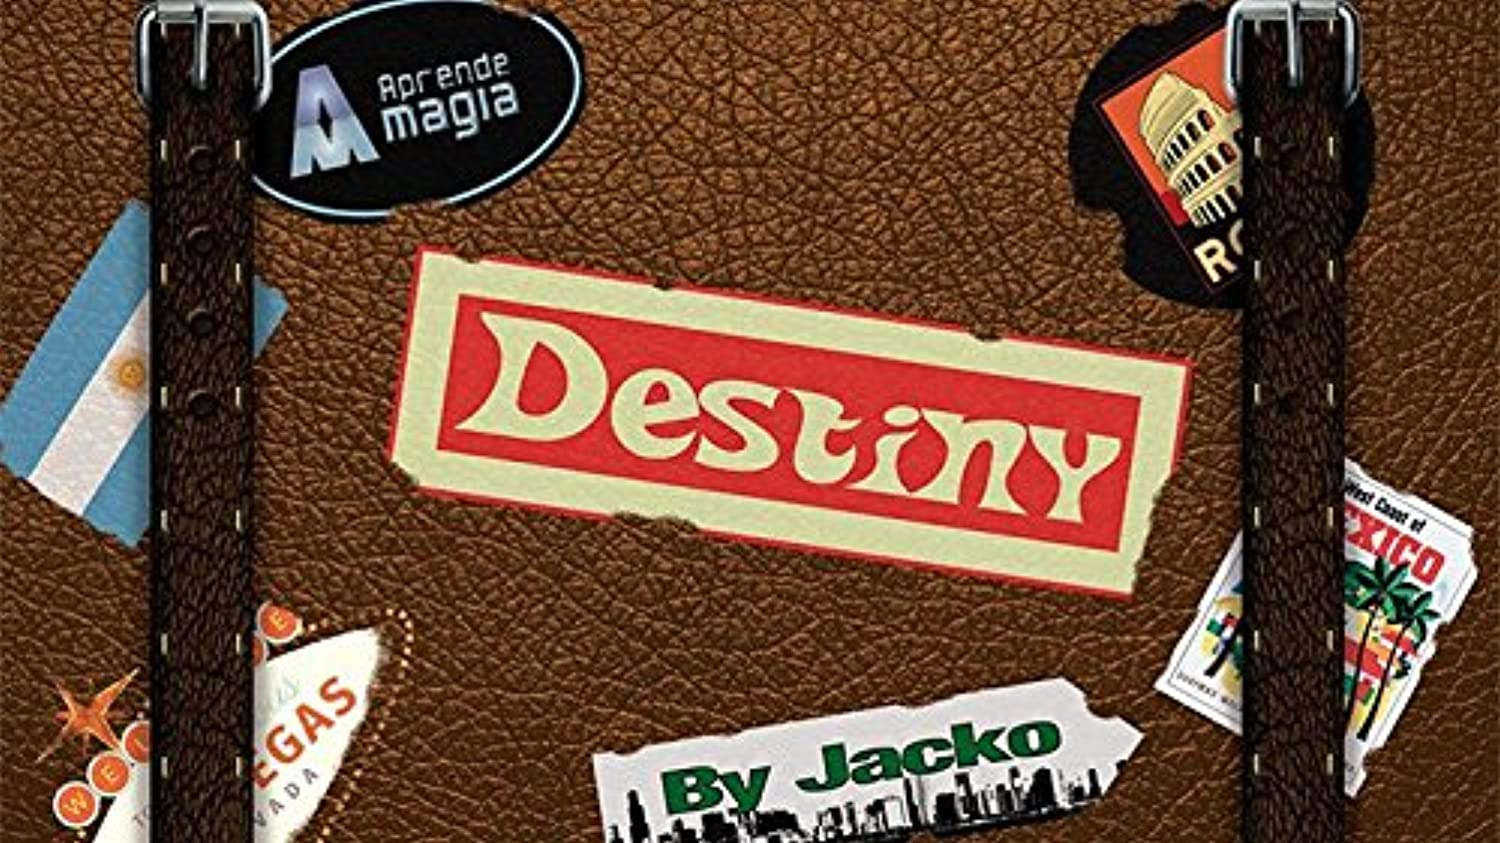 muy popular SOLOMAGIA Destiny by by by Jacko and Aprendemagia - Stage Magic - Trucos Magia y la Magia - Magic Tricks and Props  Web oficial